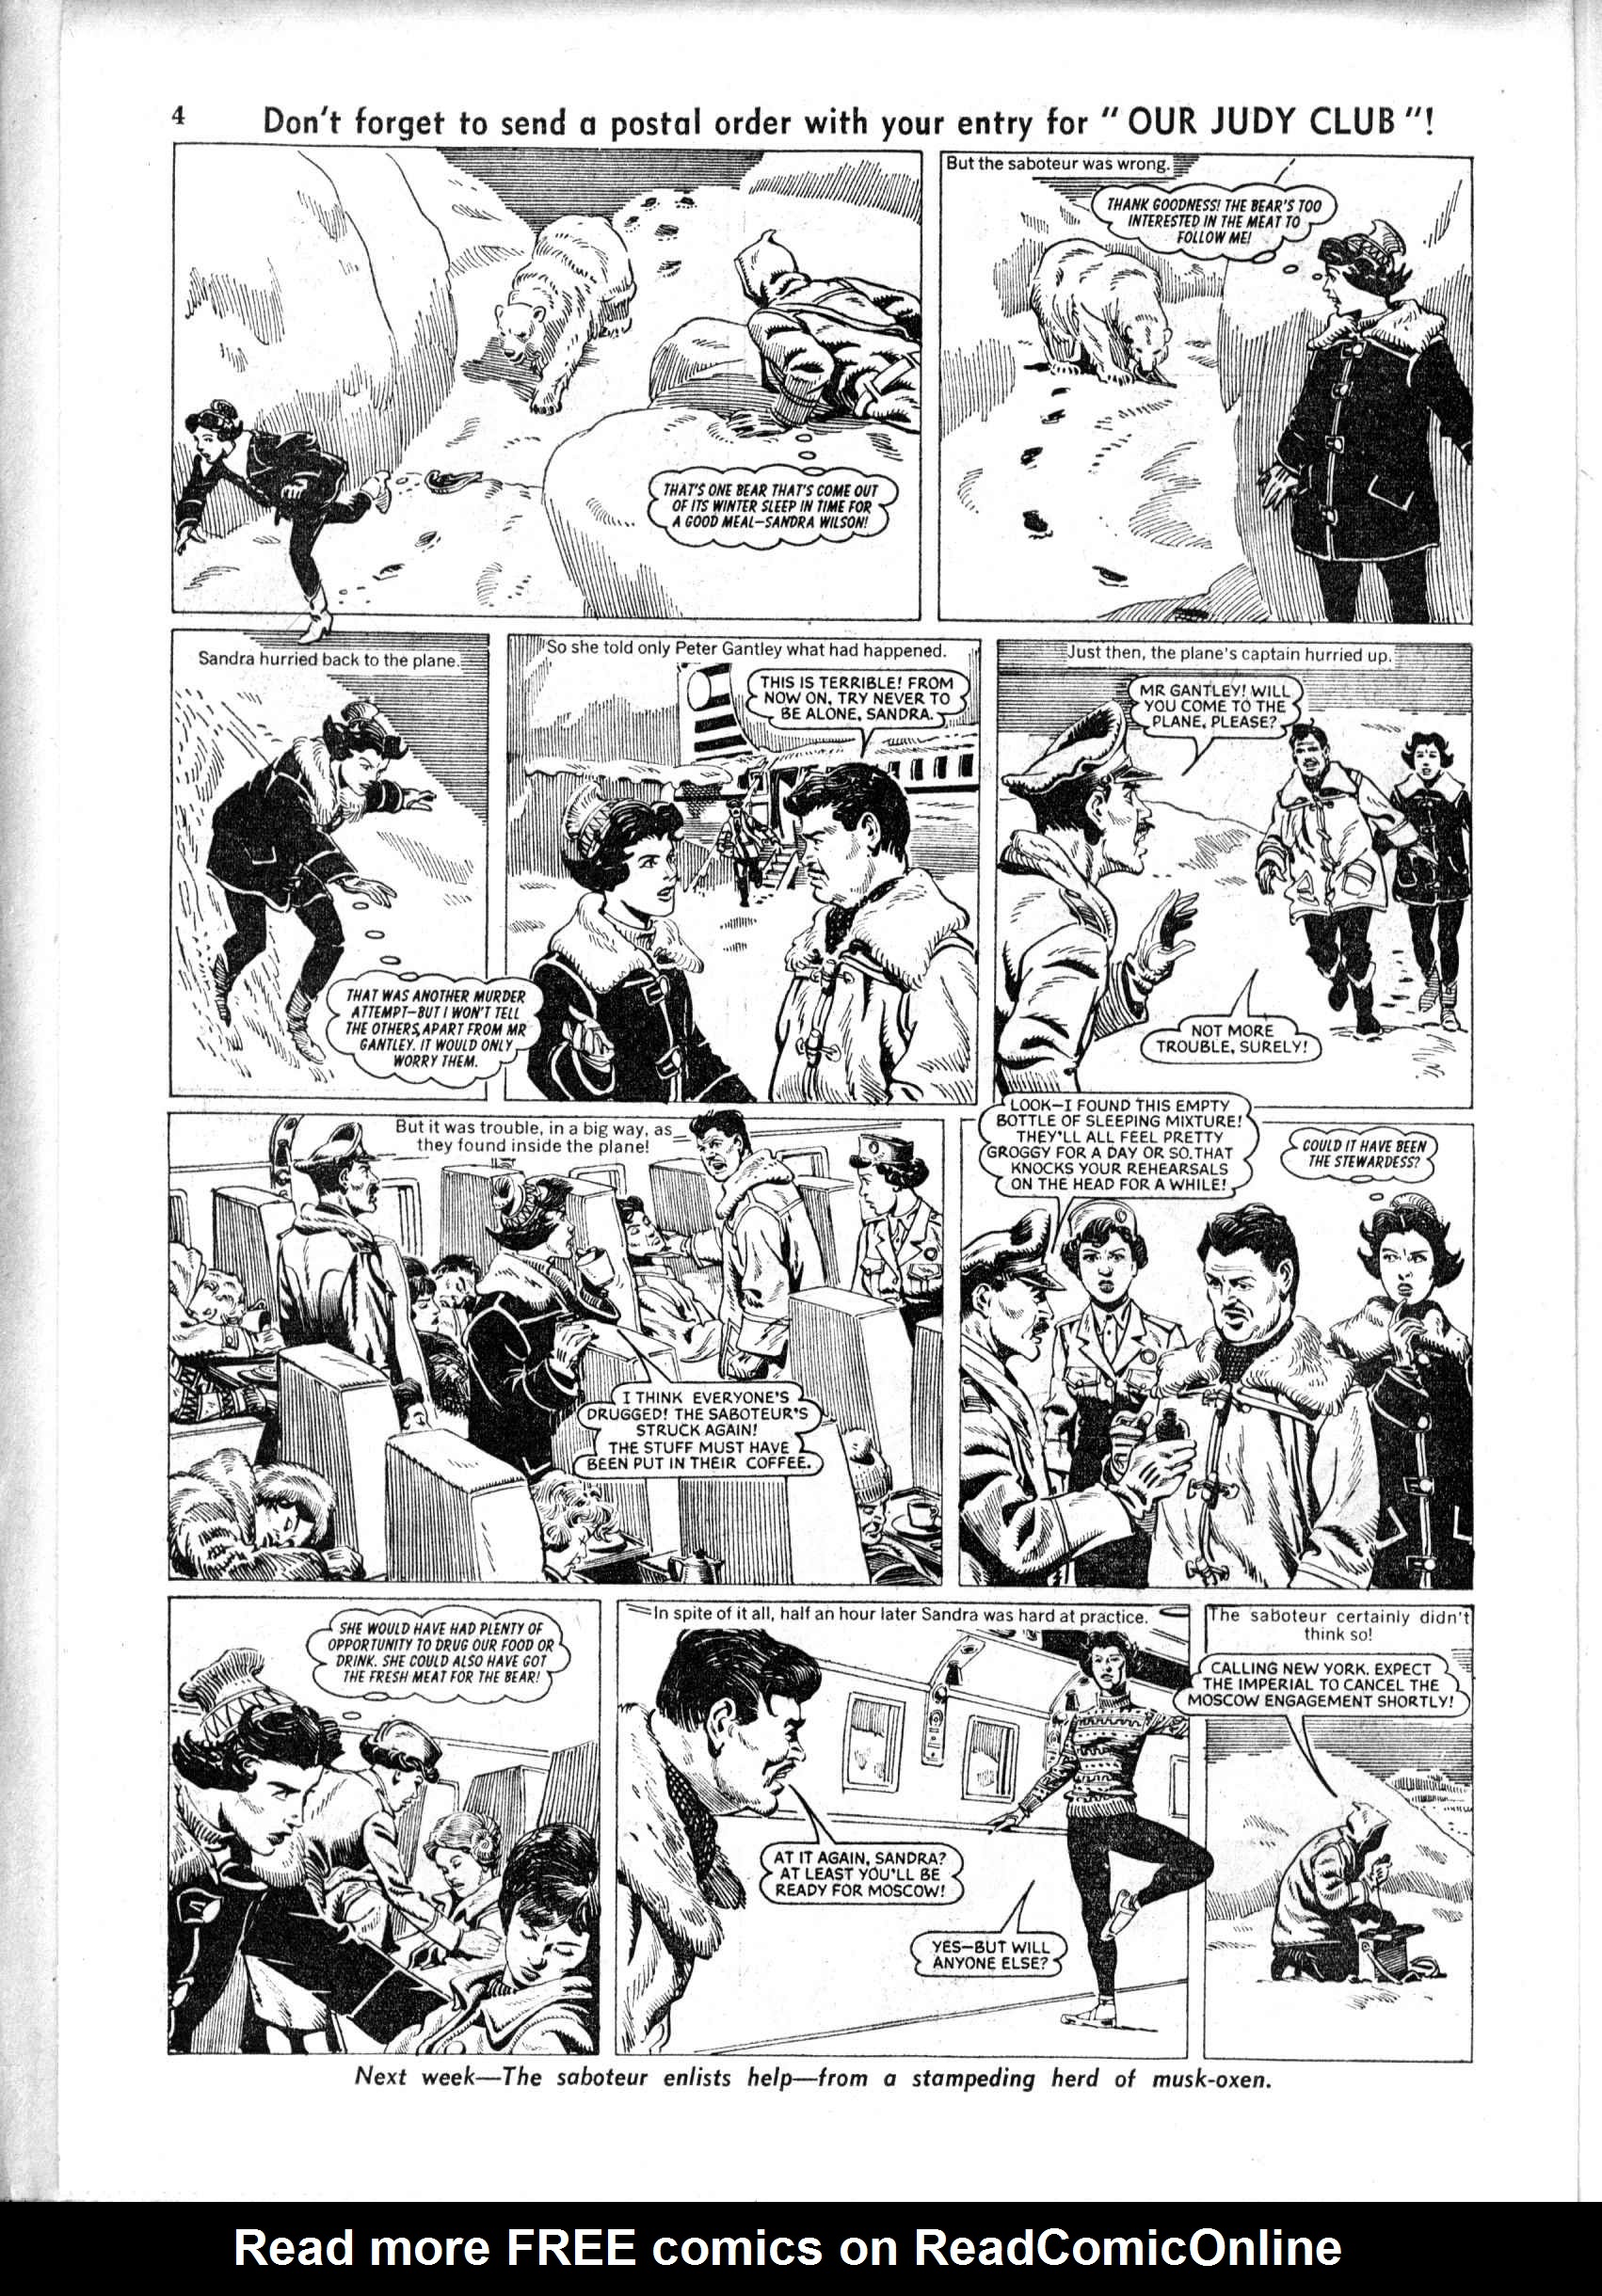 Read online Judy comic -  Issue #166 - 4